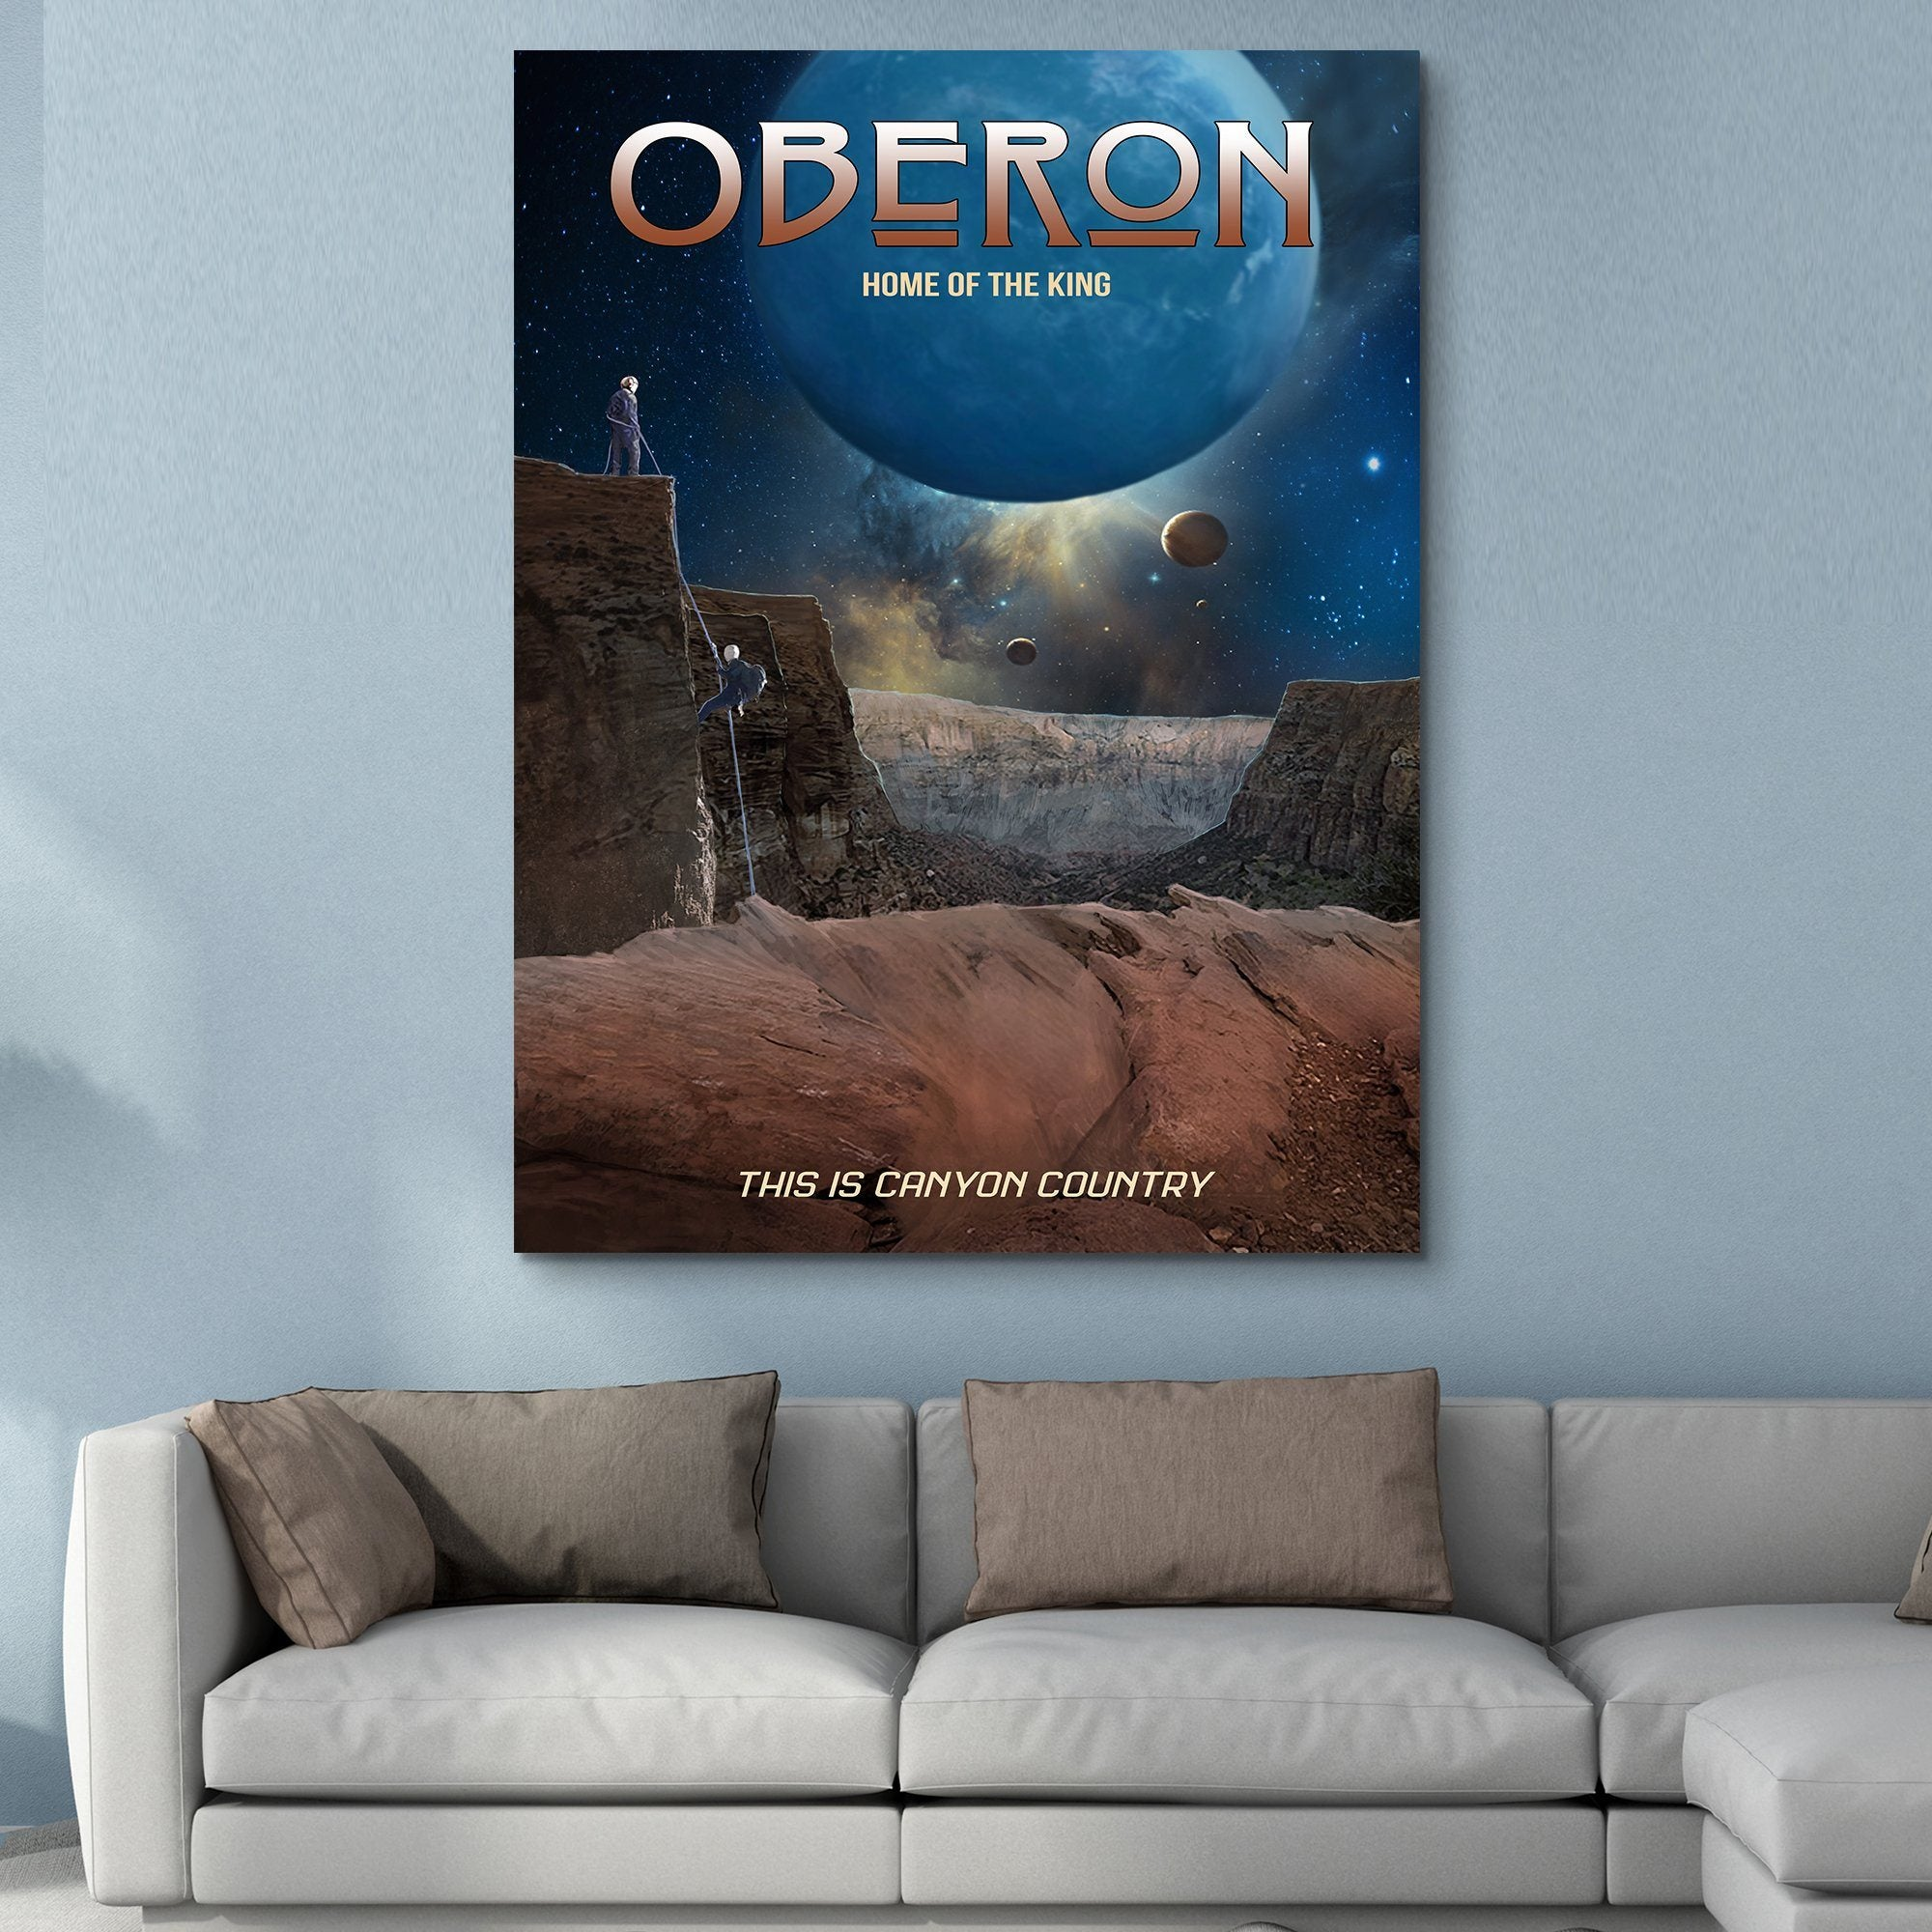 Oberon - Home of the King wall art